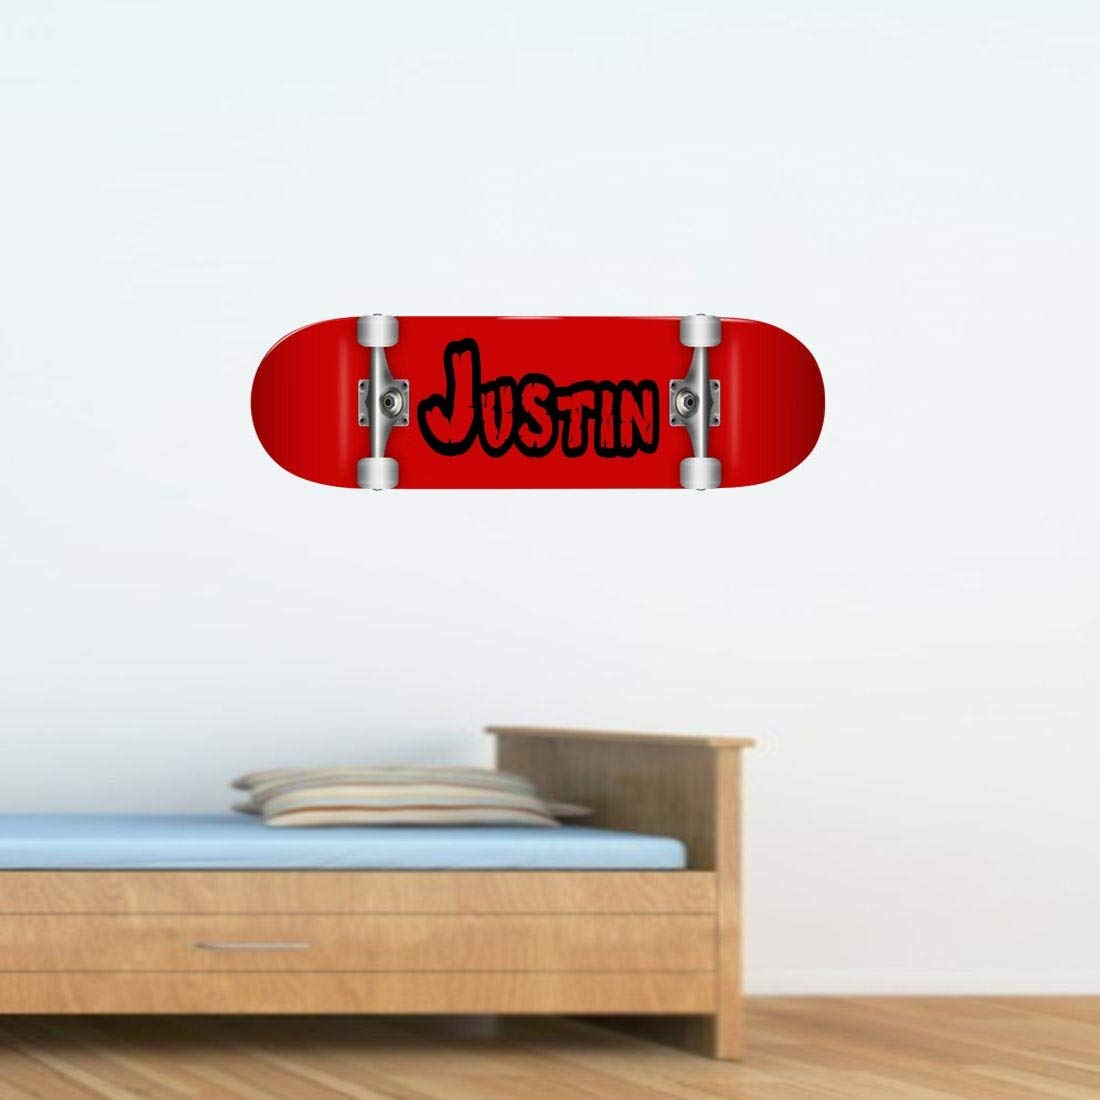 VWAQ Skateboard Custom Name Wall Decal - Insert Name, Peel and Stick Skateboard Decor - SK1 - VWAQ Vinyl Wall Art Quotes and Prints